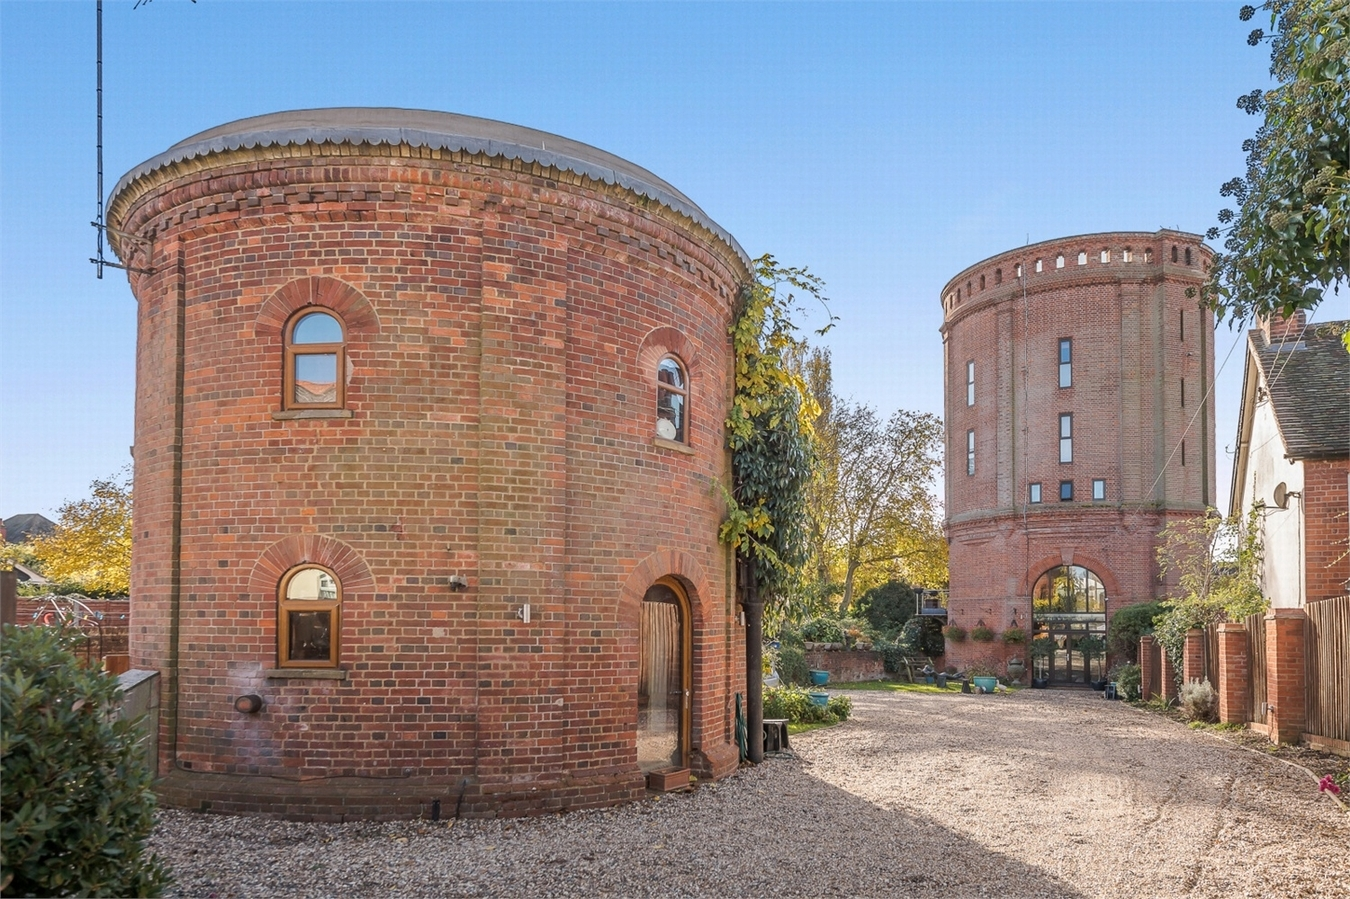 UNIQUE PROPERTY: The former water tower is now on the market